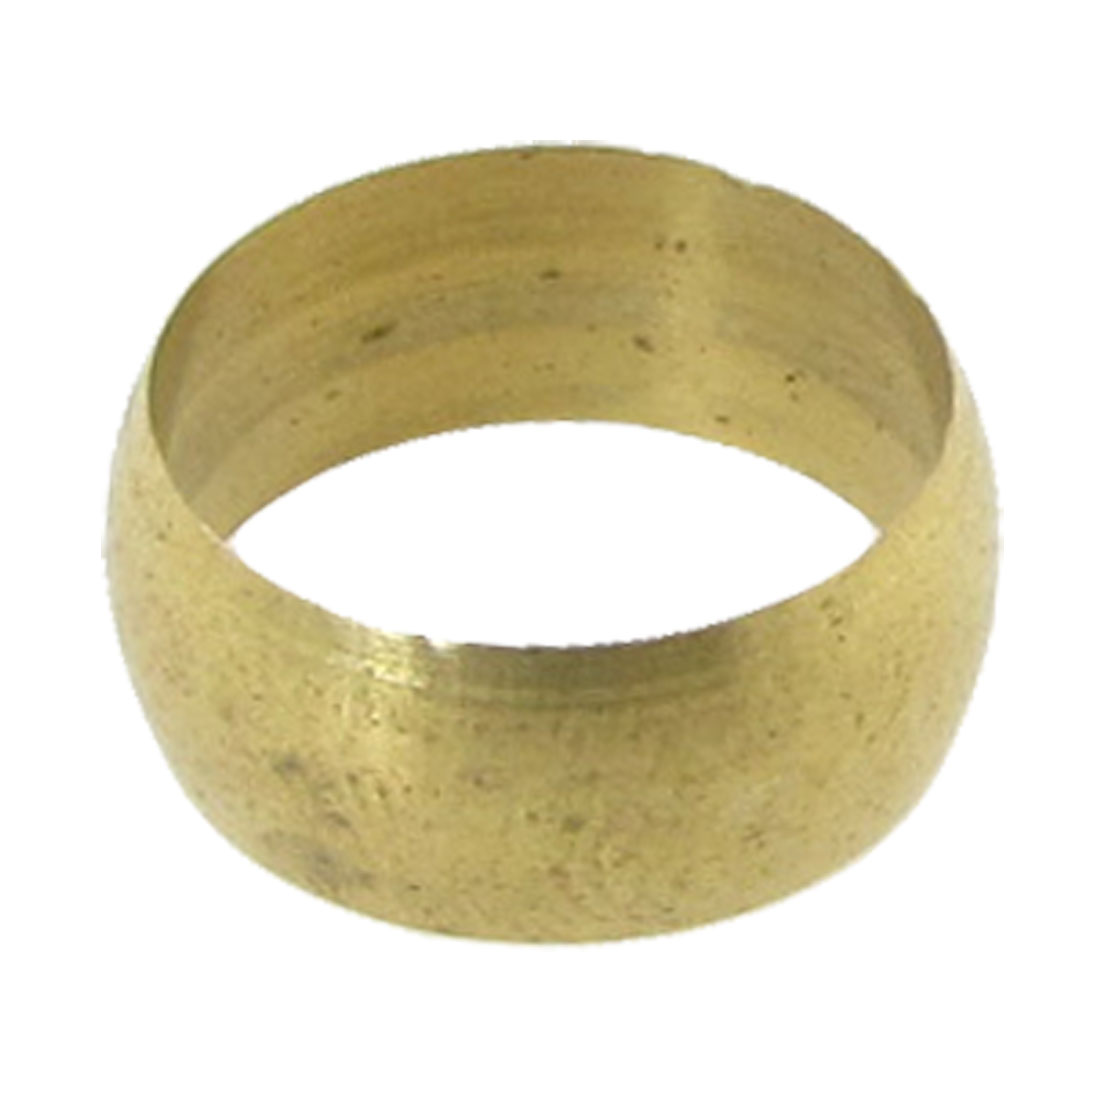 0-47-Dia-Tubing-Fitting-Gold-Tone-Brass-Compression-Sleeve